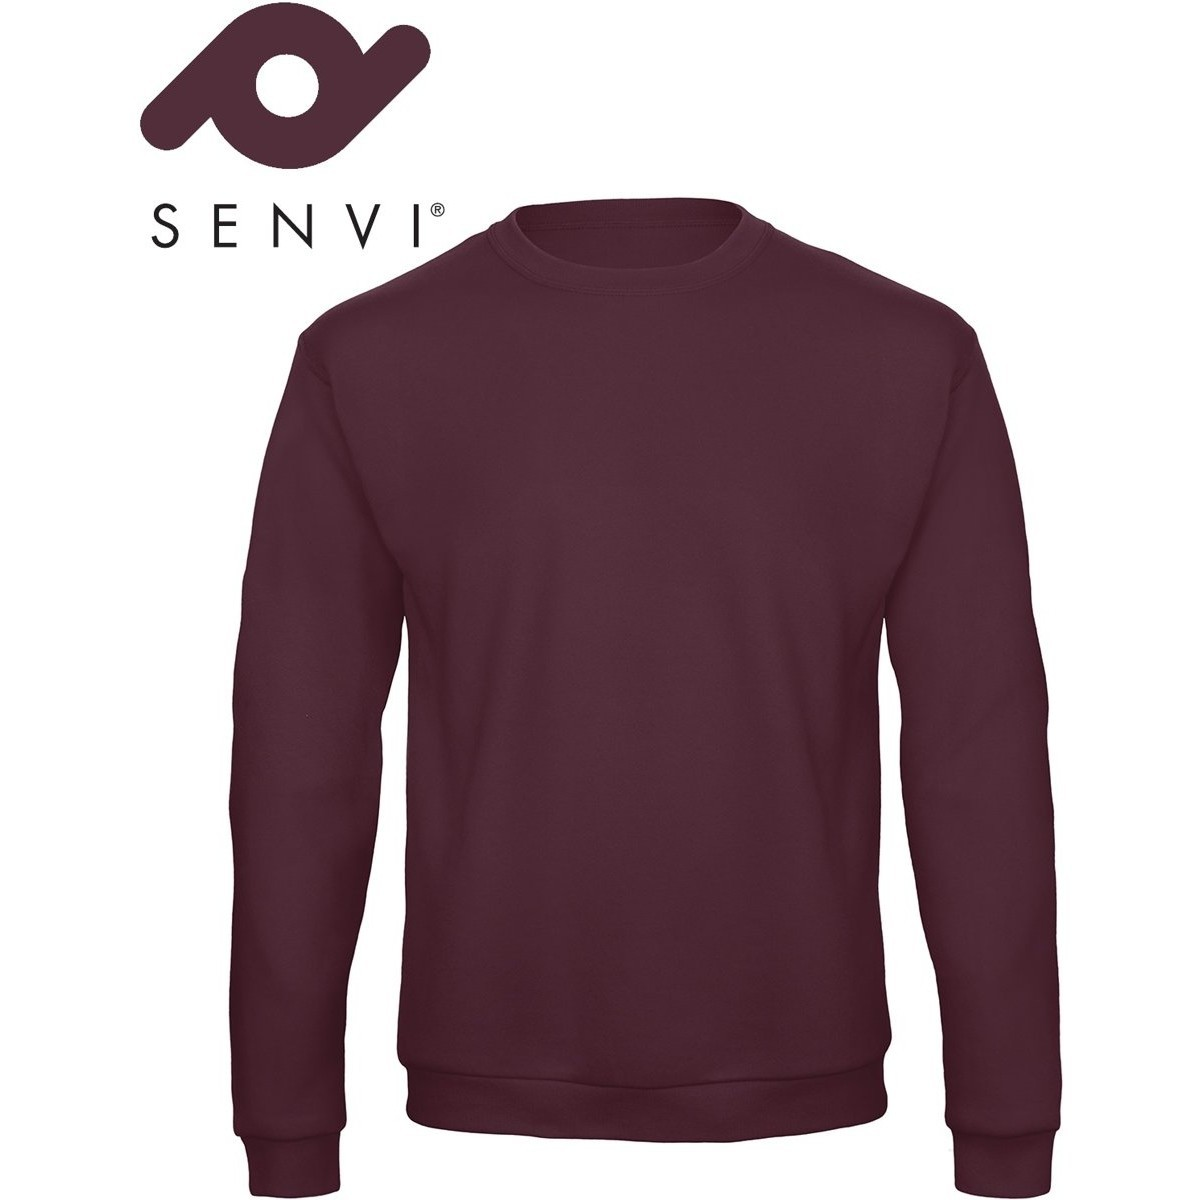 Senvi Basic Sweater (Kleur: Burgundy) - (Maat XS)